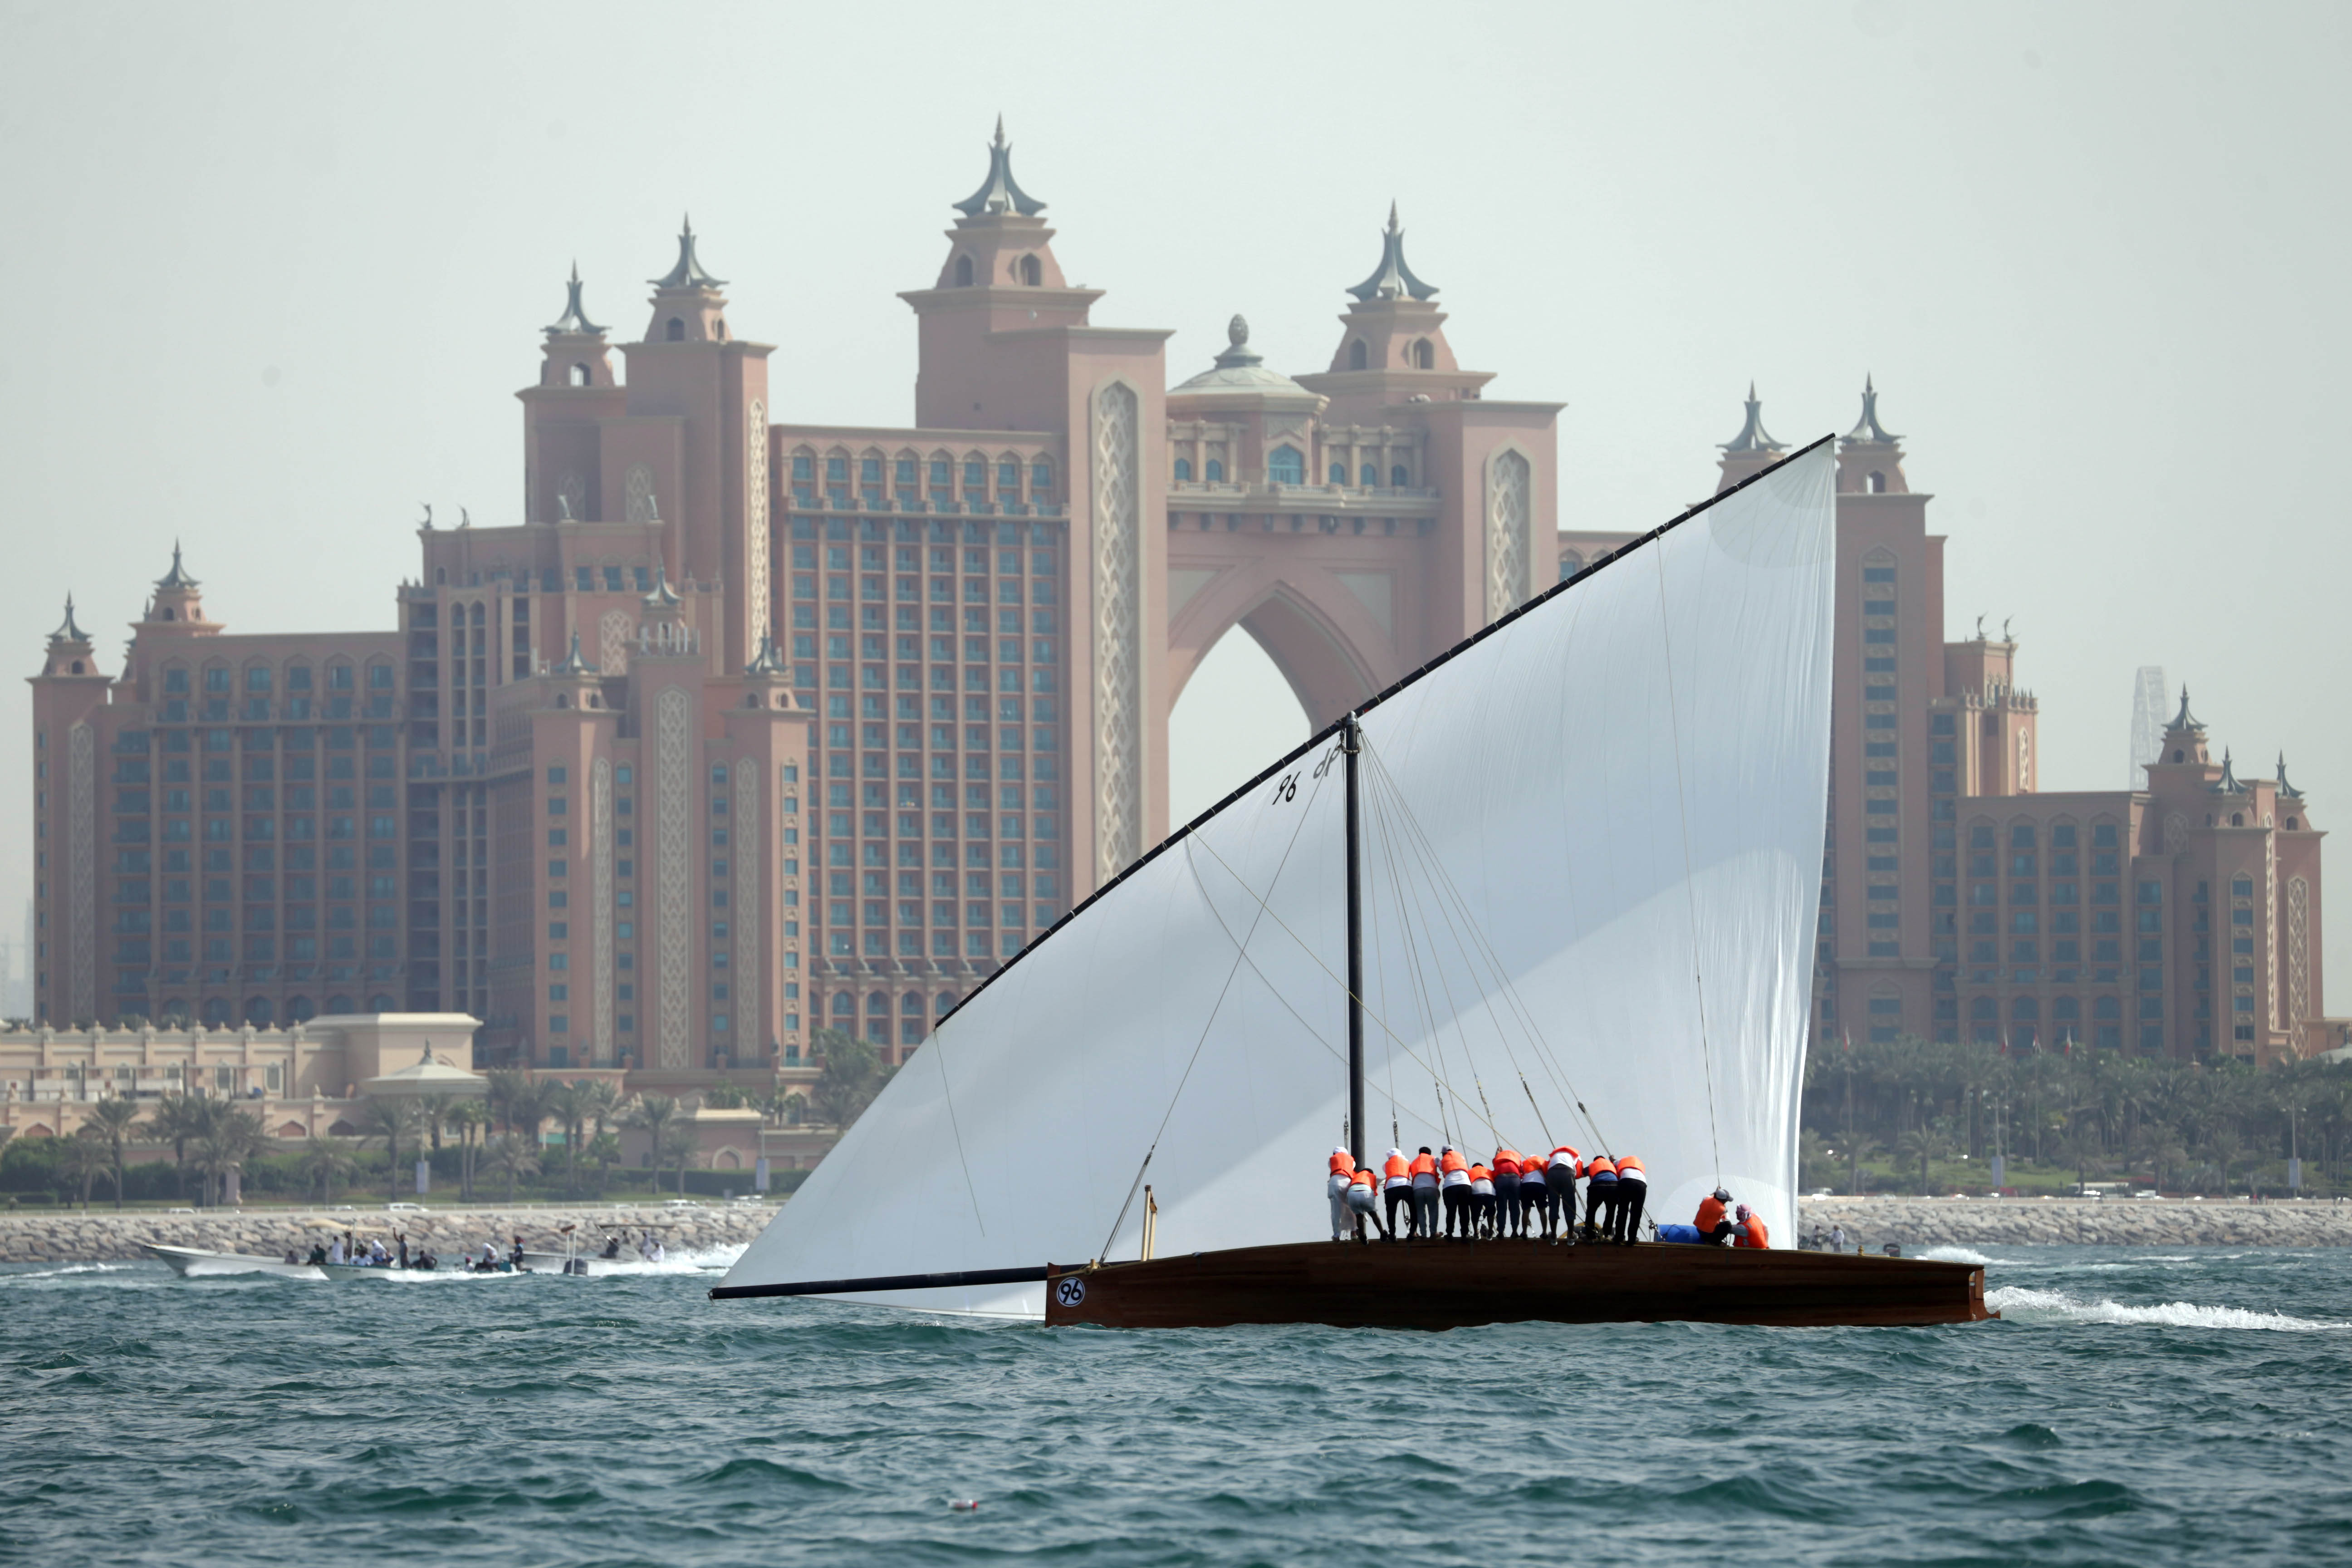 43ft Dhow Race to launch the season on Friday, 7th of September